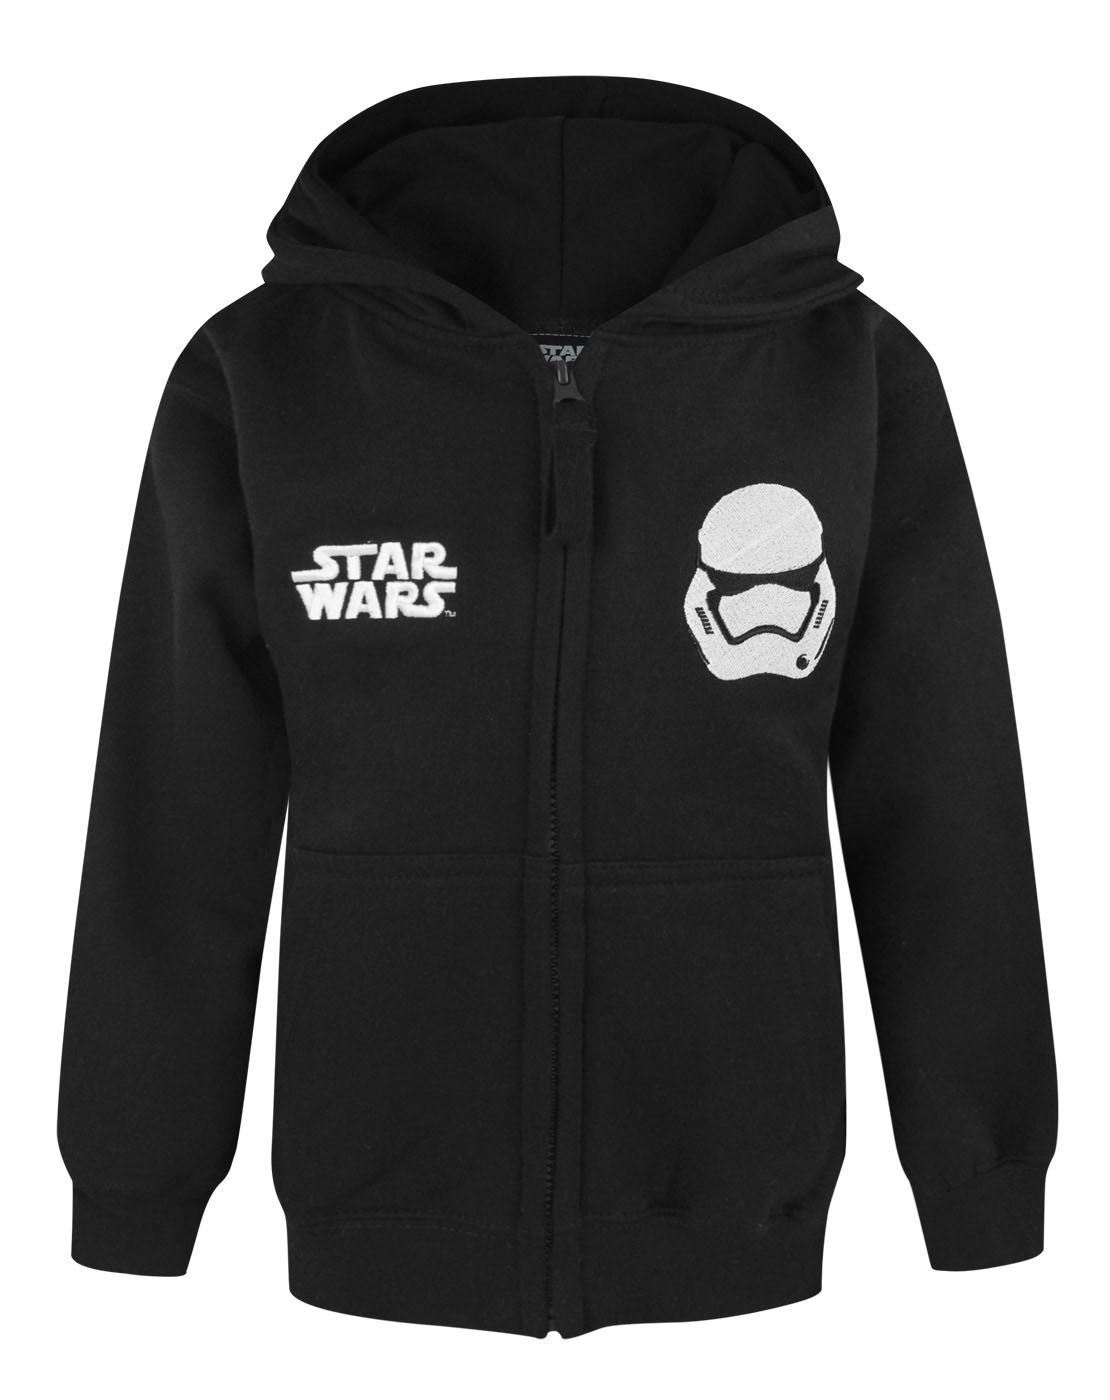 Star Wars Force Awakens First Order Stormtrooper Boy's Zip Up Hoodie